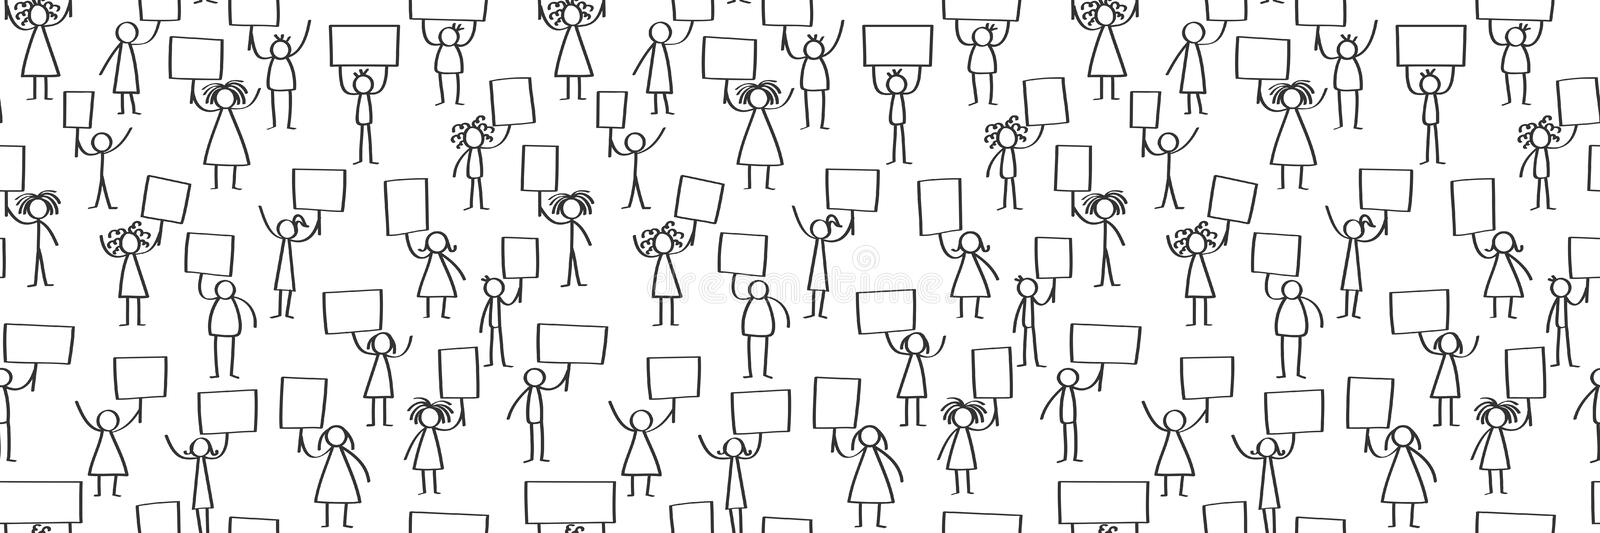 Vector illustration of stick figures protesting, holding up blank signs, seamless banner. Isolated on white background stock illustration